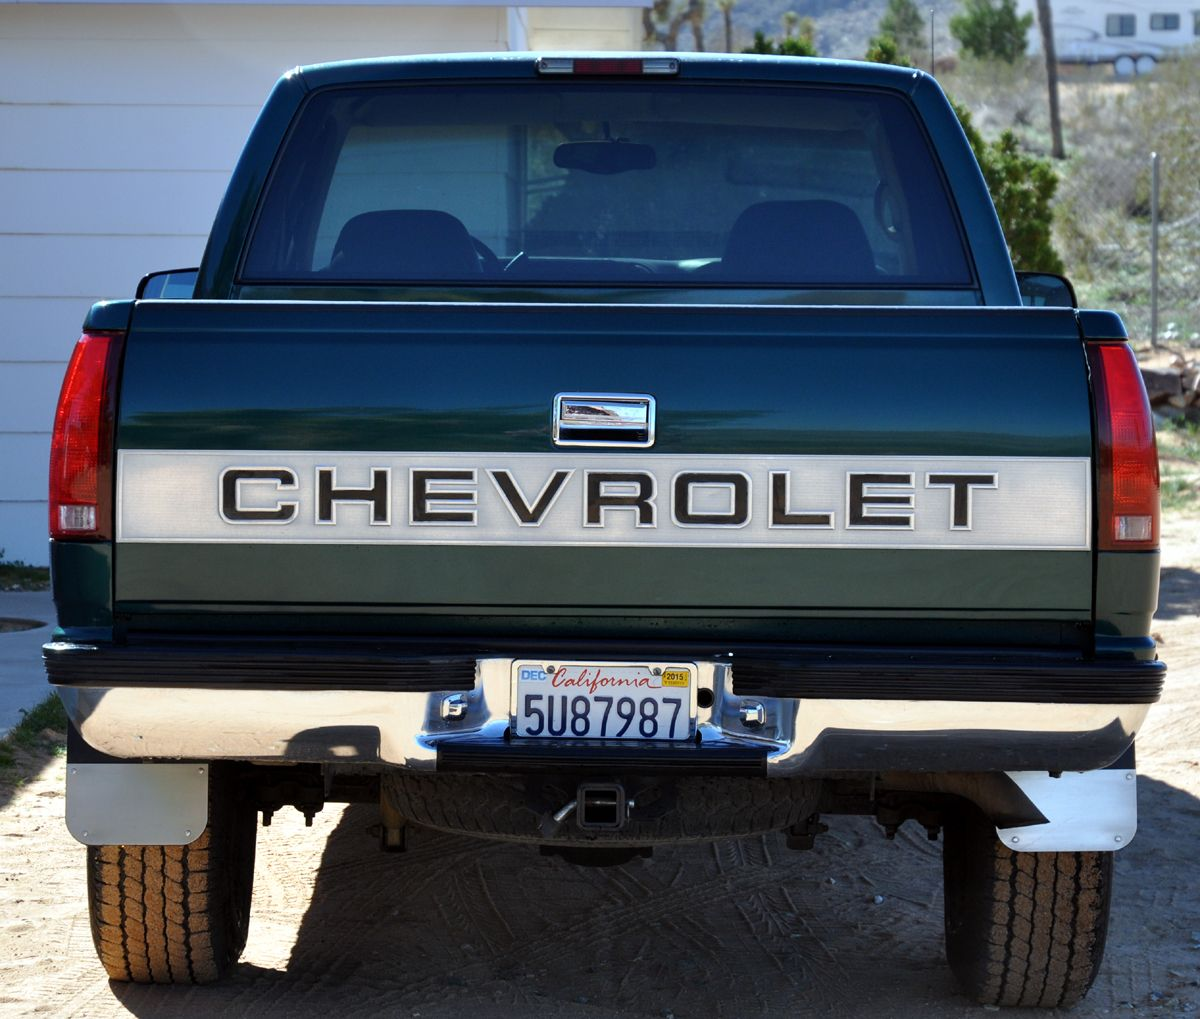 All Chevy chevy c10 wiki : Awesome 2015 Chevrolet Colorado Review | Chevrolet Cruze/Camaro ...